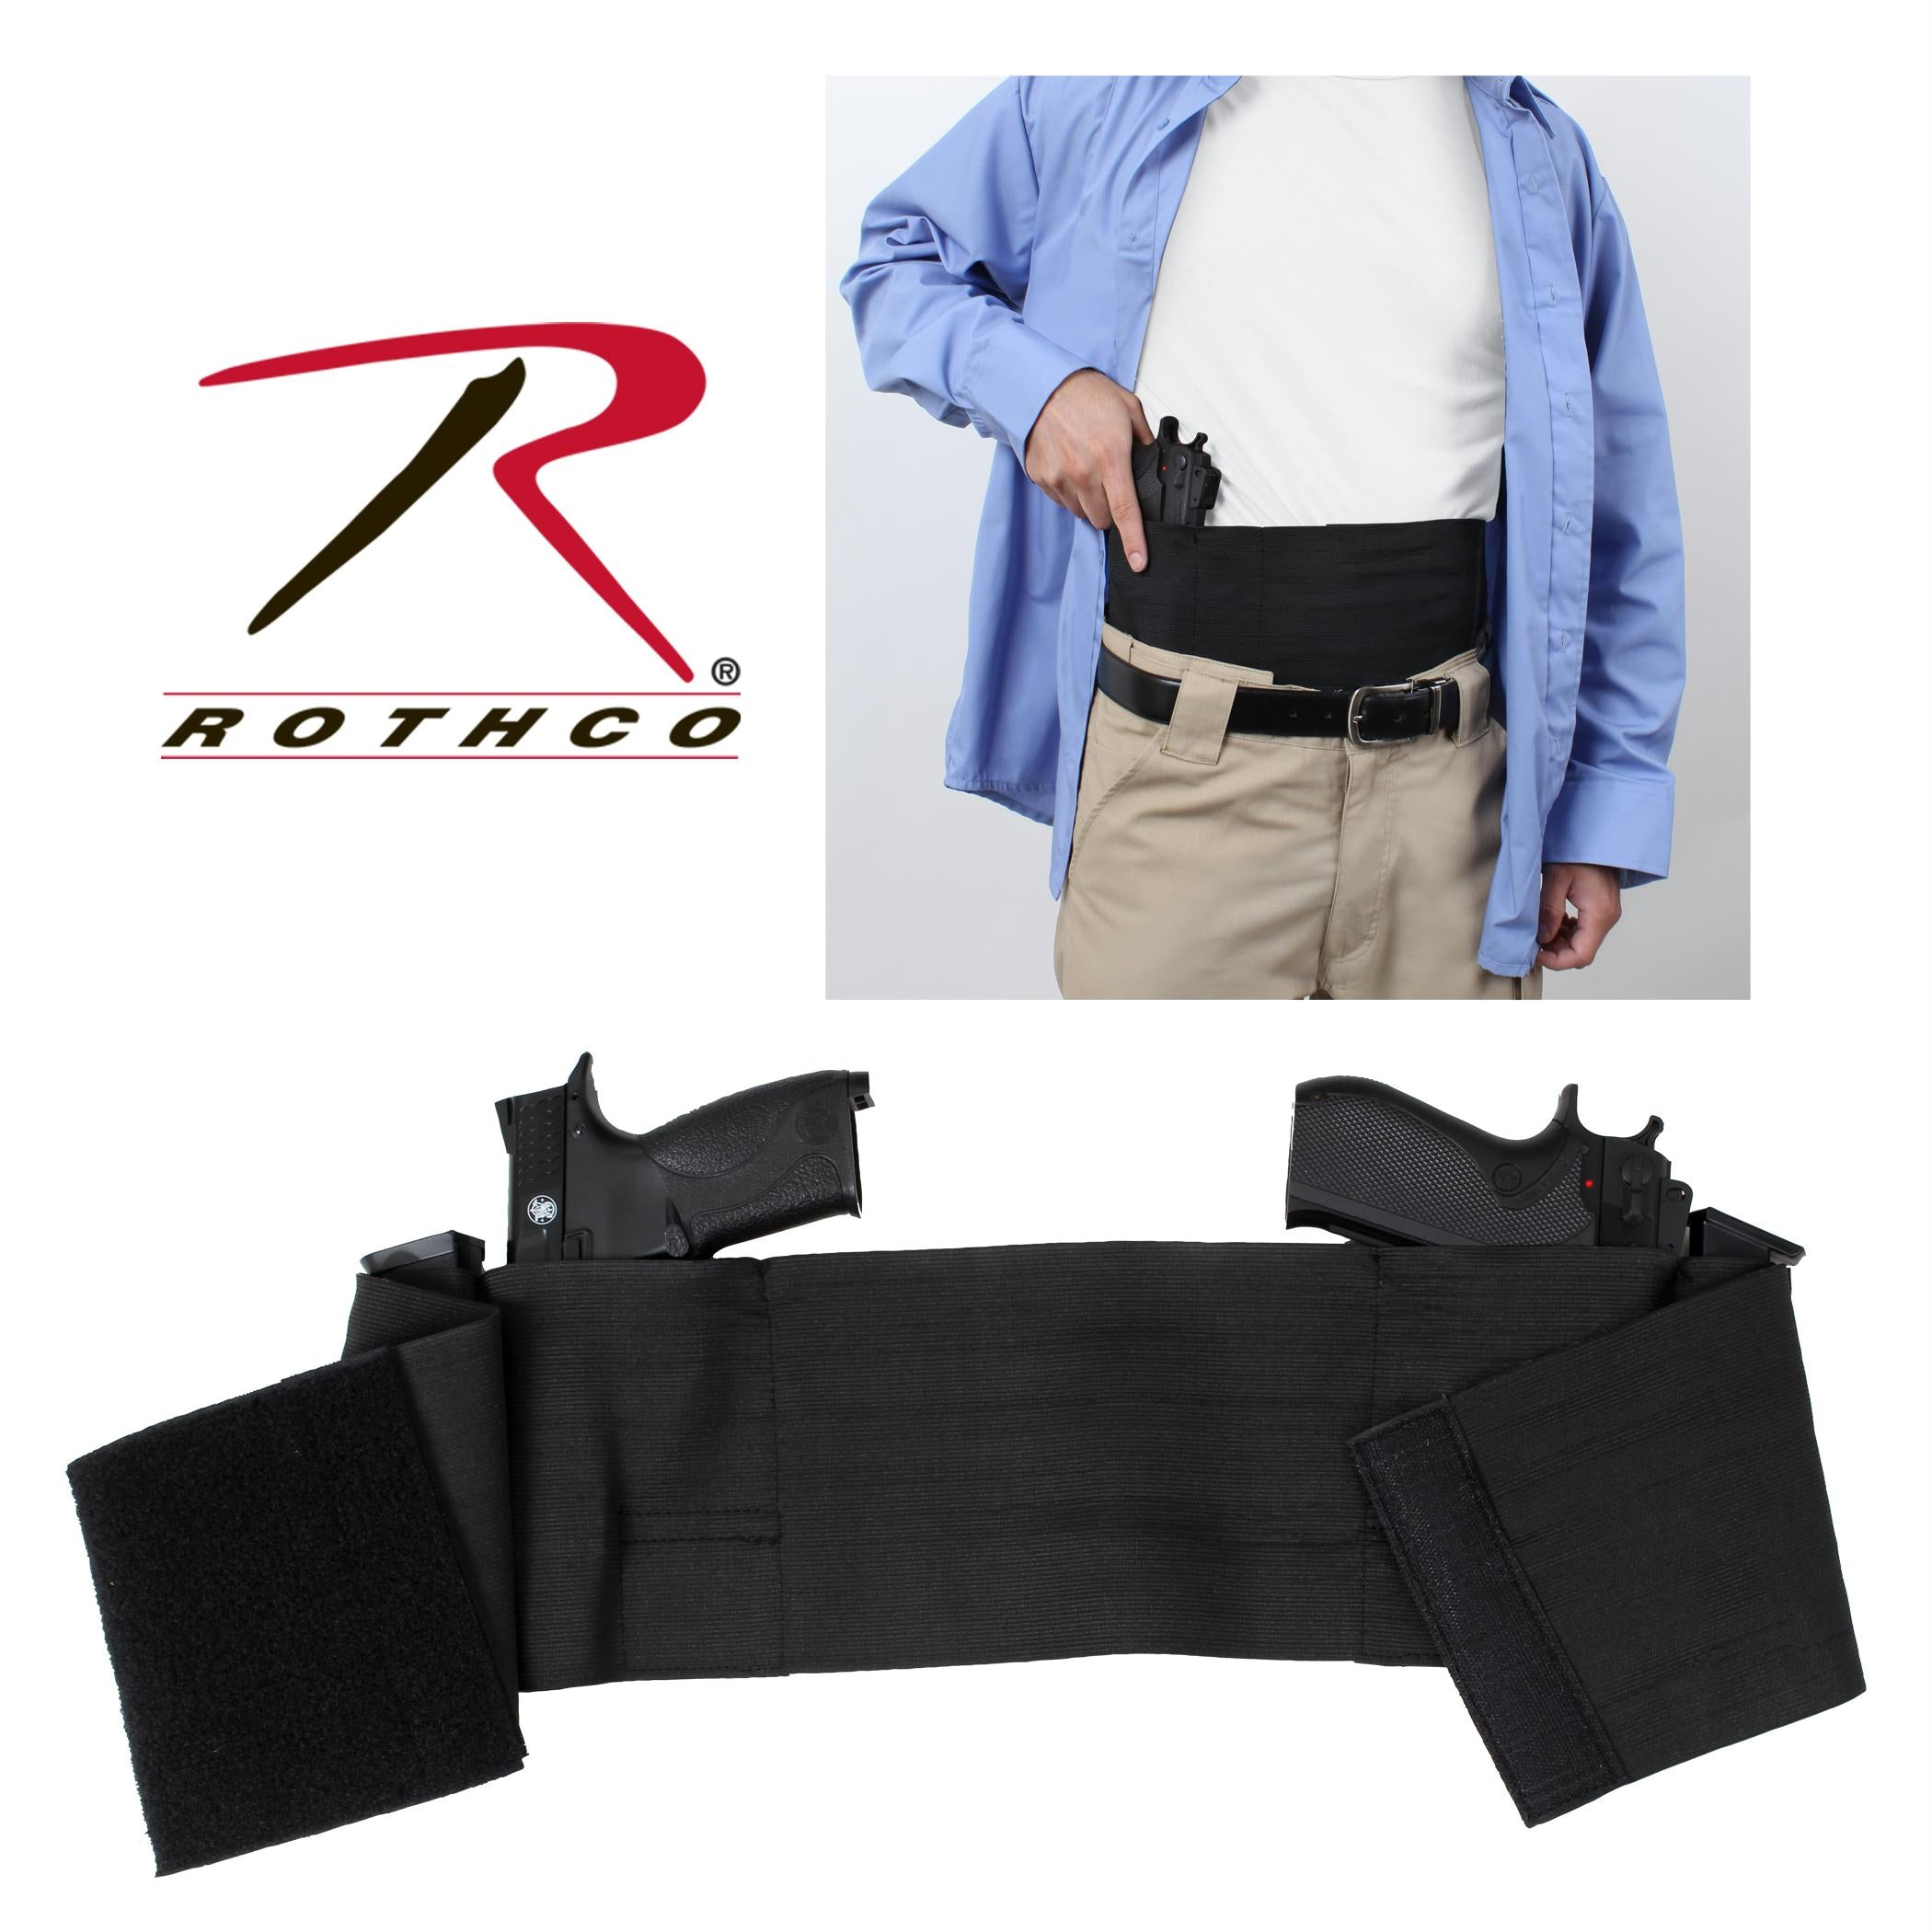 Rothco Ambidextrous Concealed Elastic Belly Band Holster - 2XL / 3XL